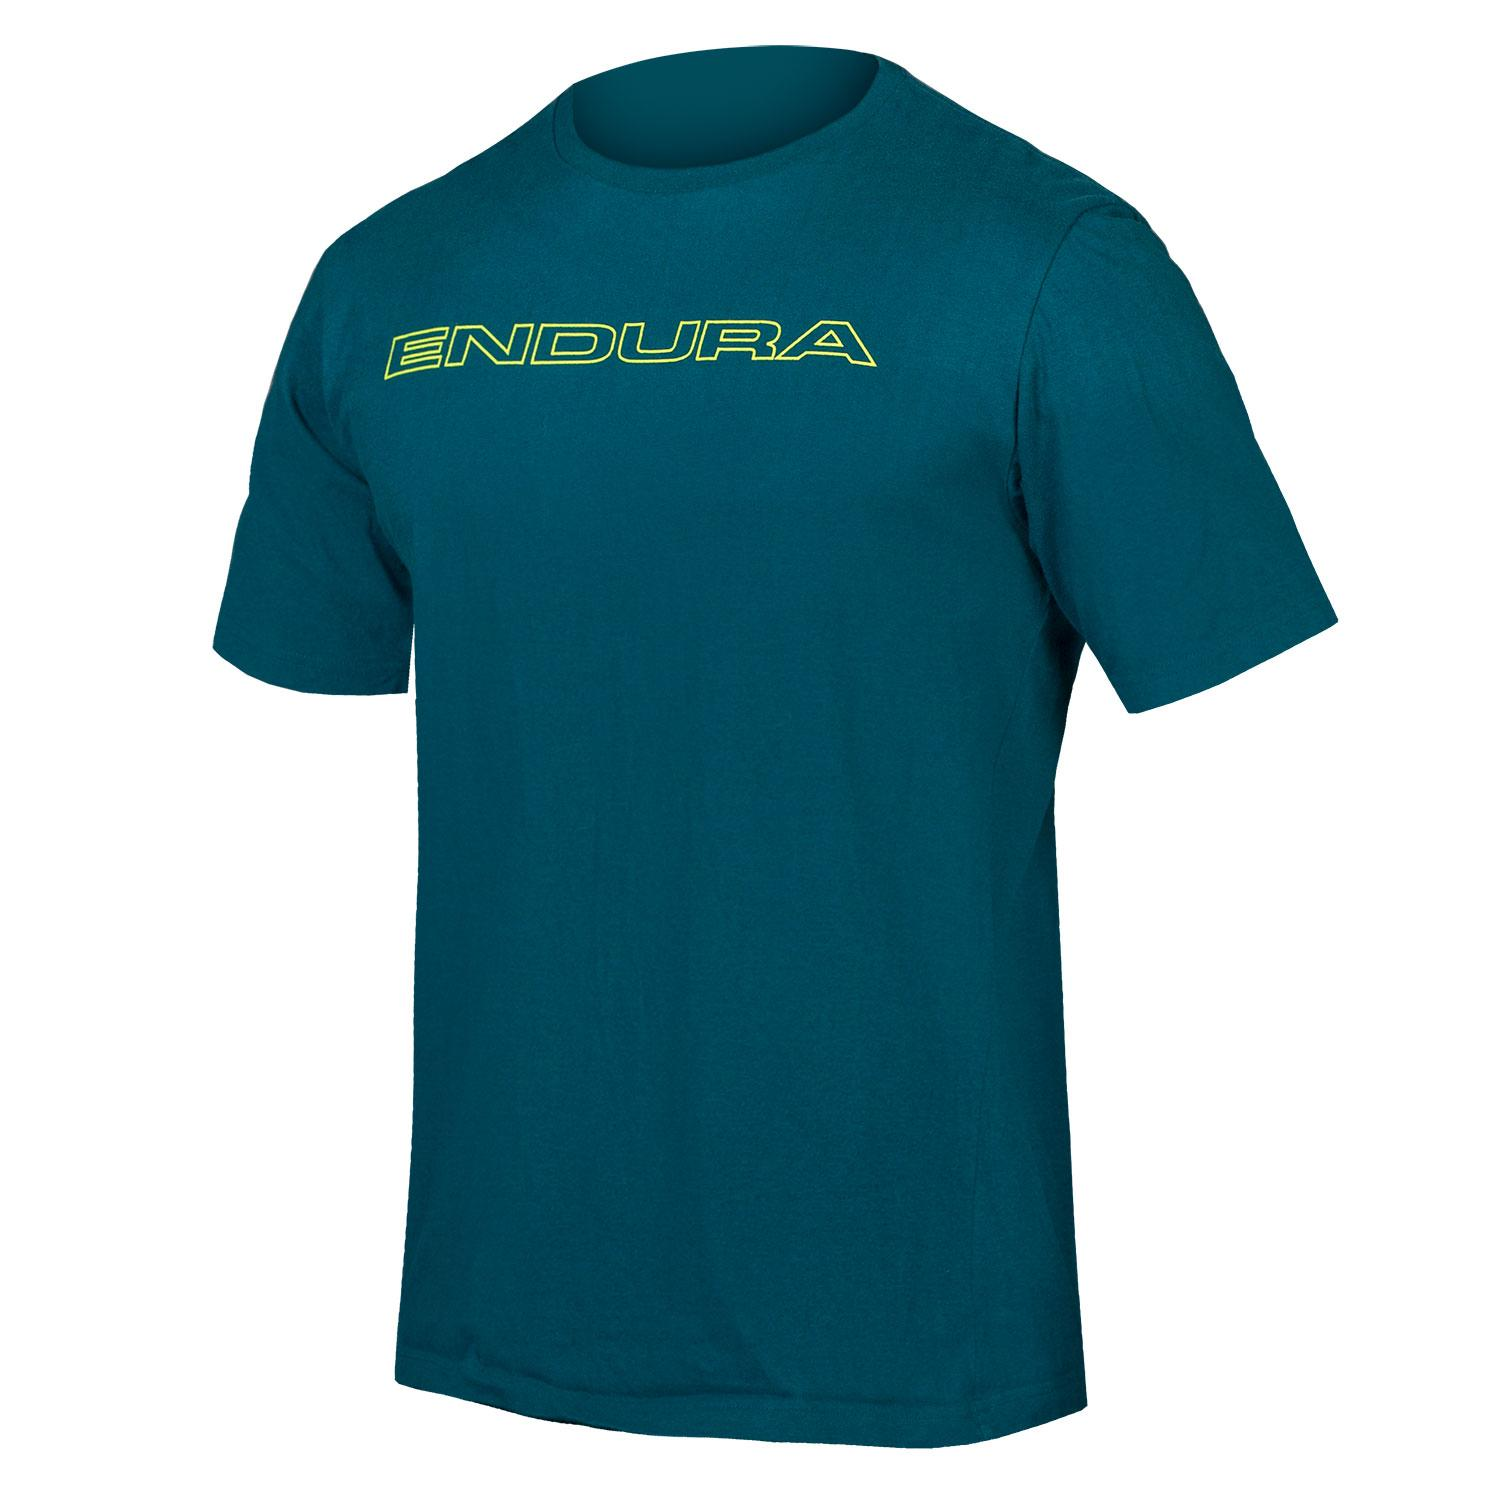 Endura Casual shirt korte mouwen Heren Blauw / One Clan Carbon Tshirt: IJsvogel Blauw